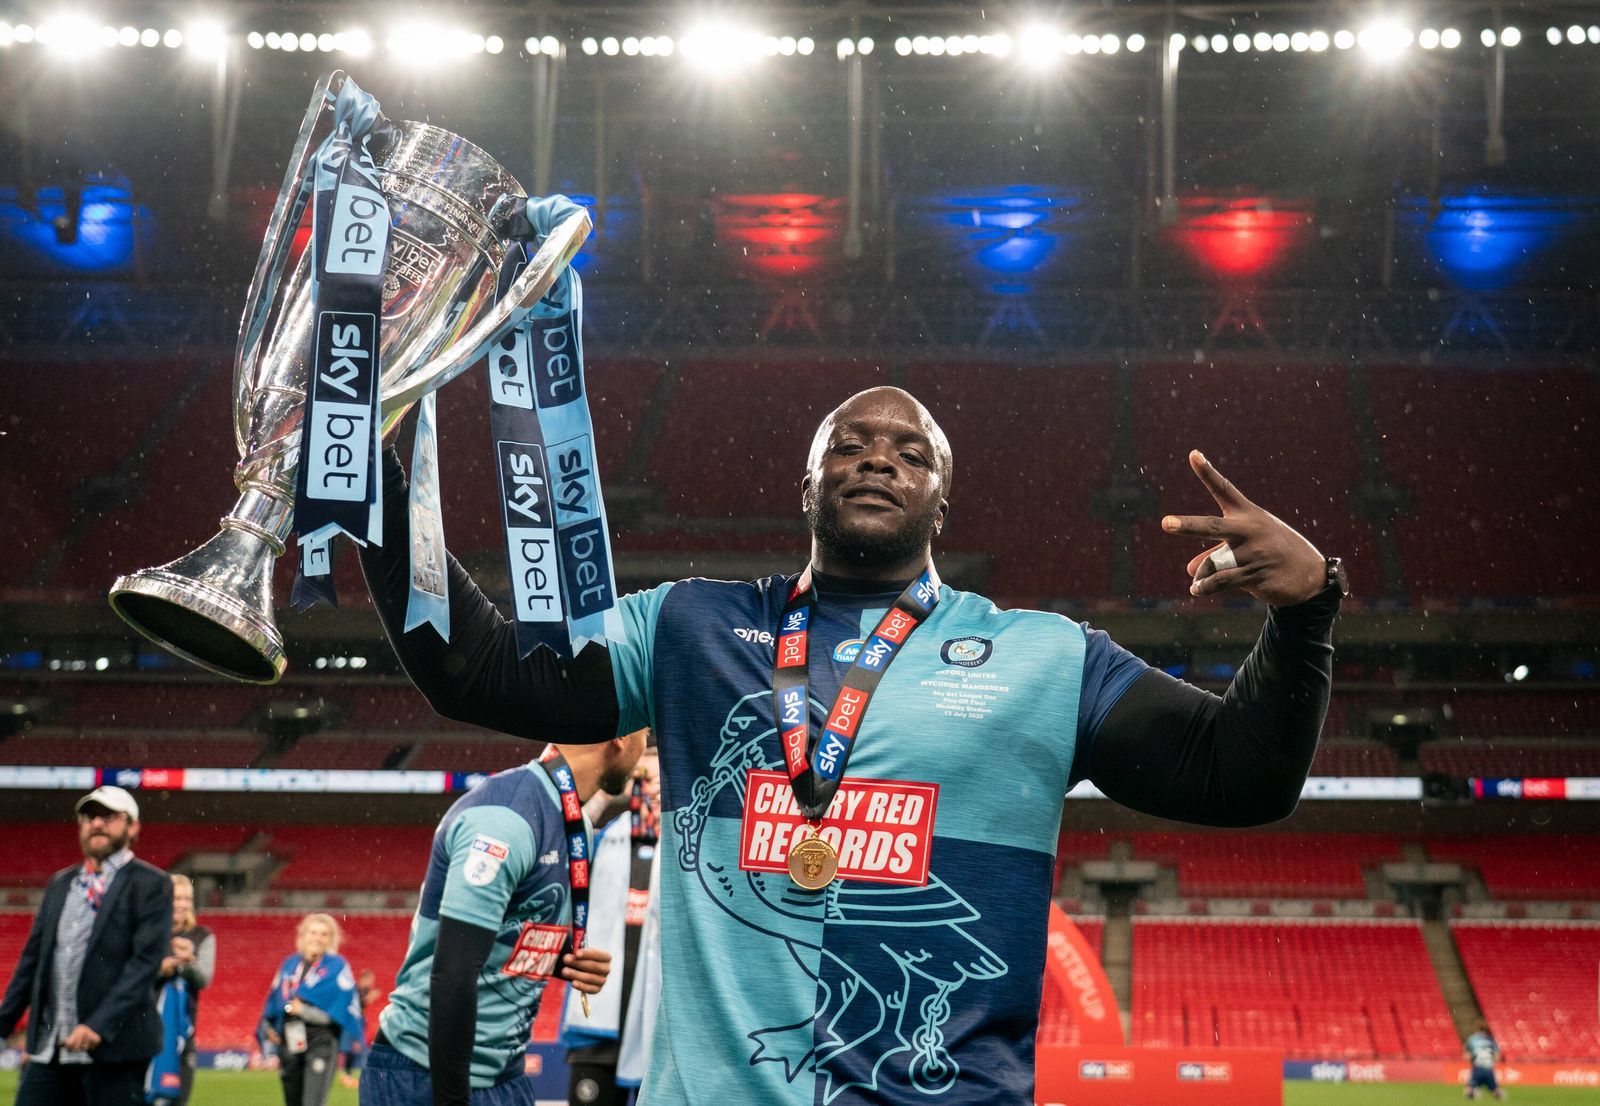 Adebayo Akinfenwa of Wycombe Wanderers lifts the winning trophy during the Sky Bet League 1 play-off final match betwee